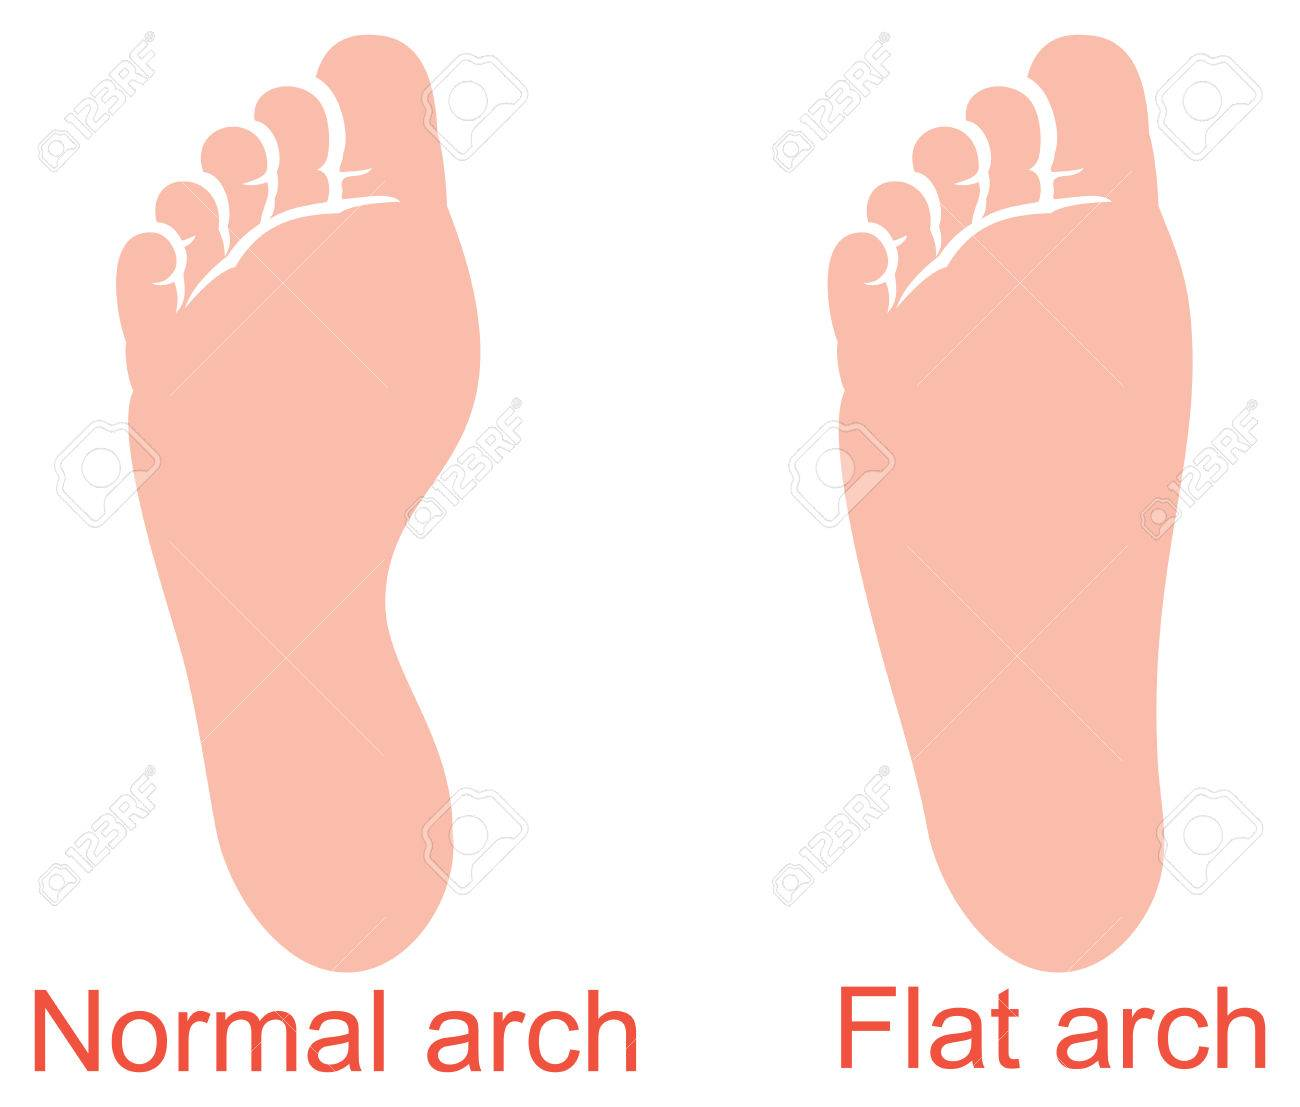 Human Anatomy Flat And Normal Arch Vector Illustration Royalty